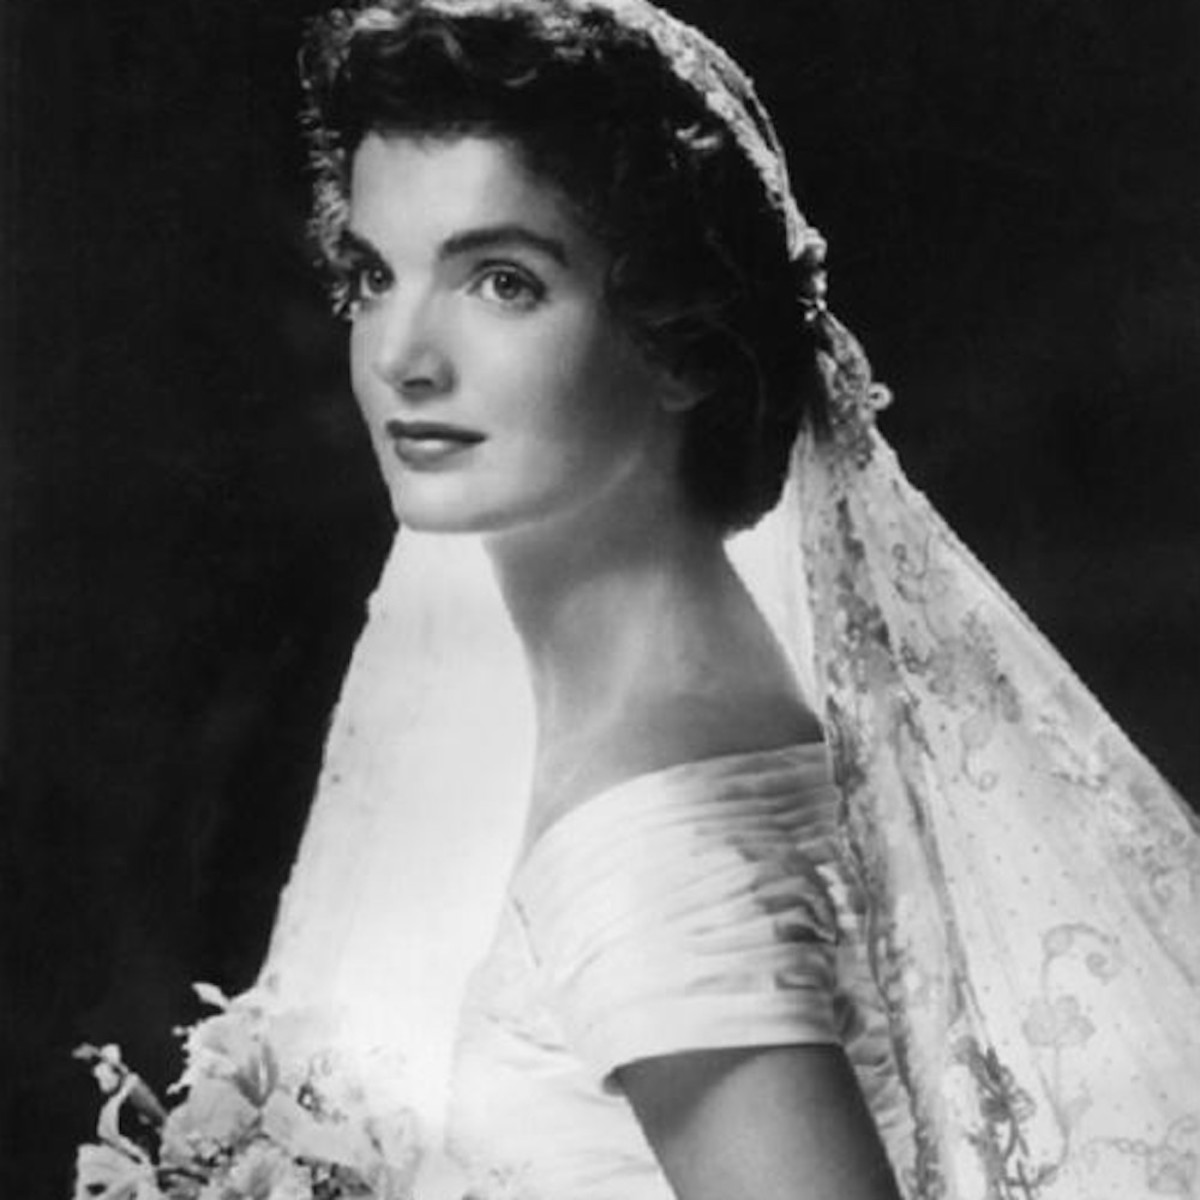 Jackie Kennedy on her Wedding Day, Rhode Island, 12 September, 1953